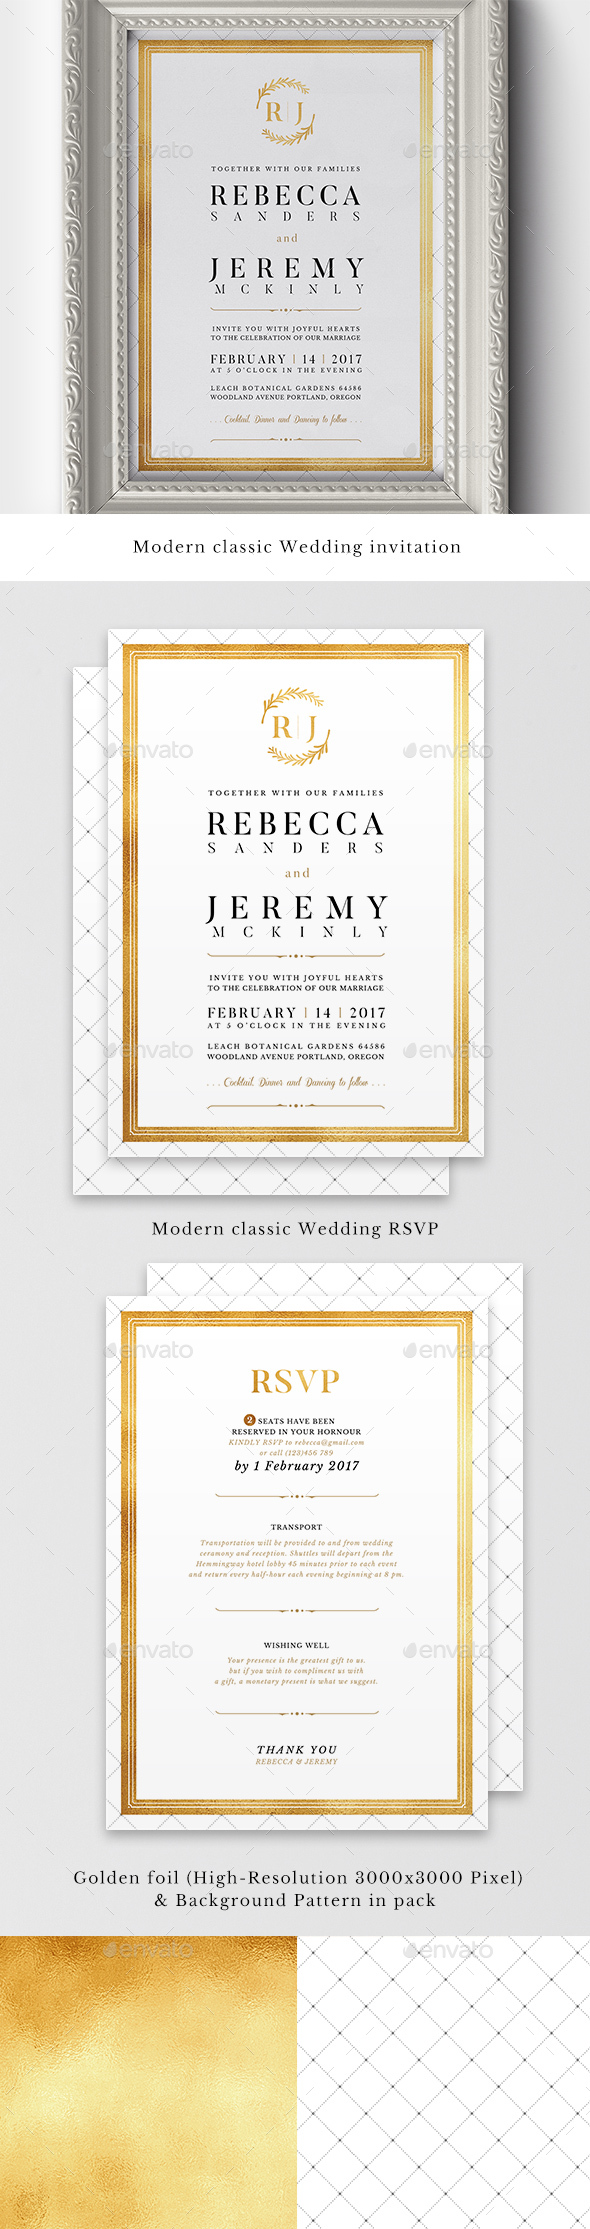 Modern Classic Wedding Invitations by BNIMIT | GraphicRiver